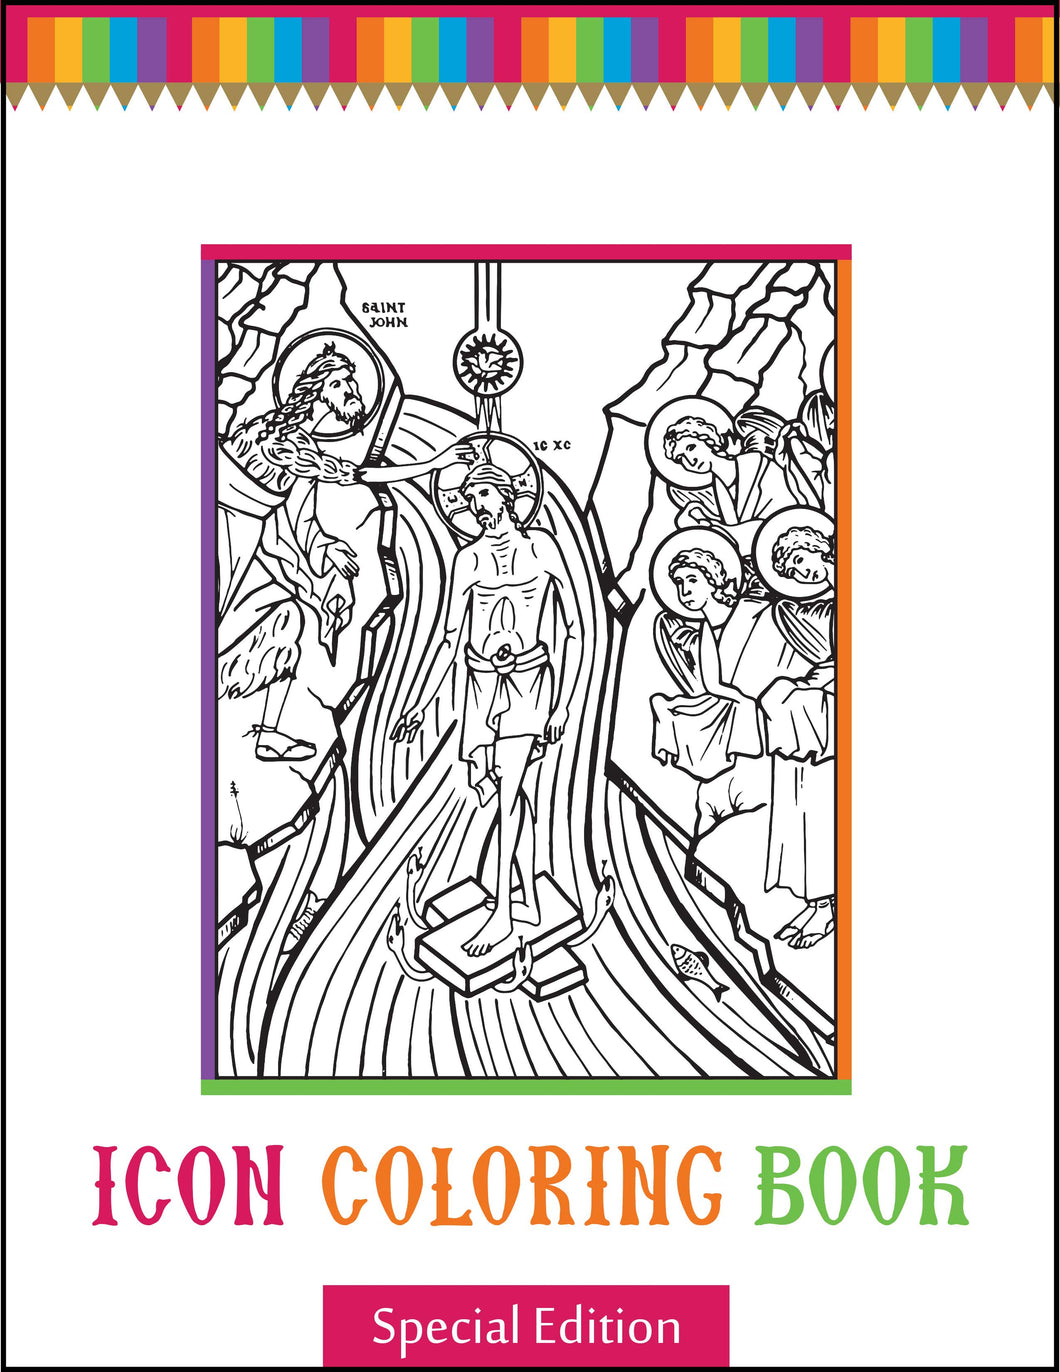 Special Edition Icon Coloring Book